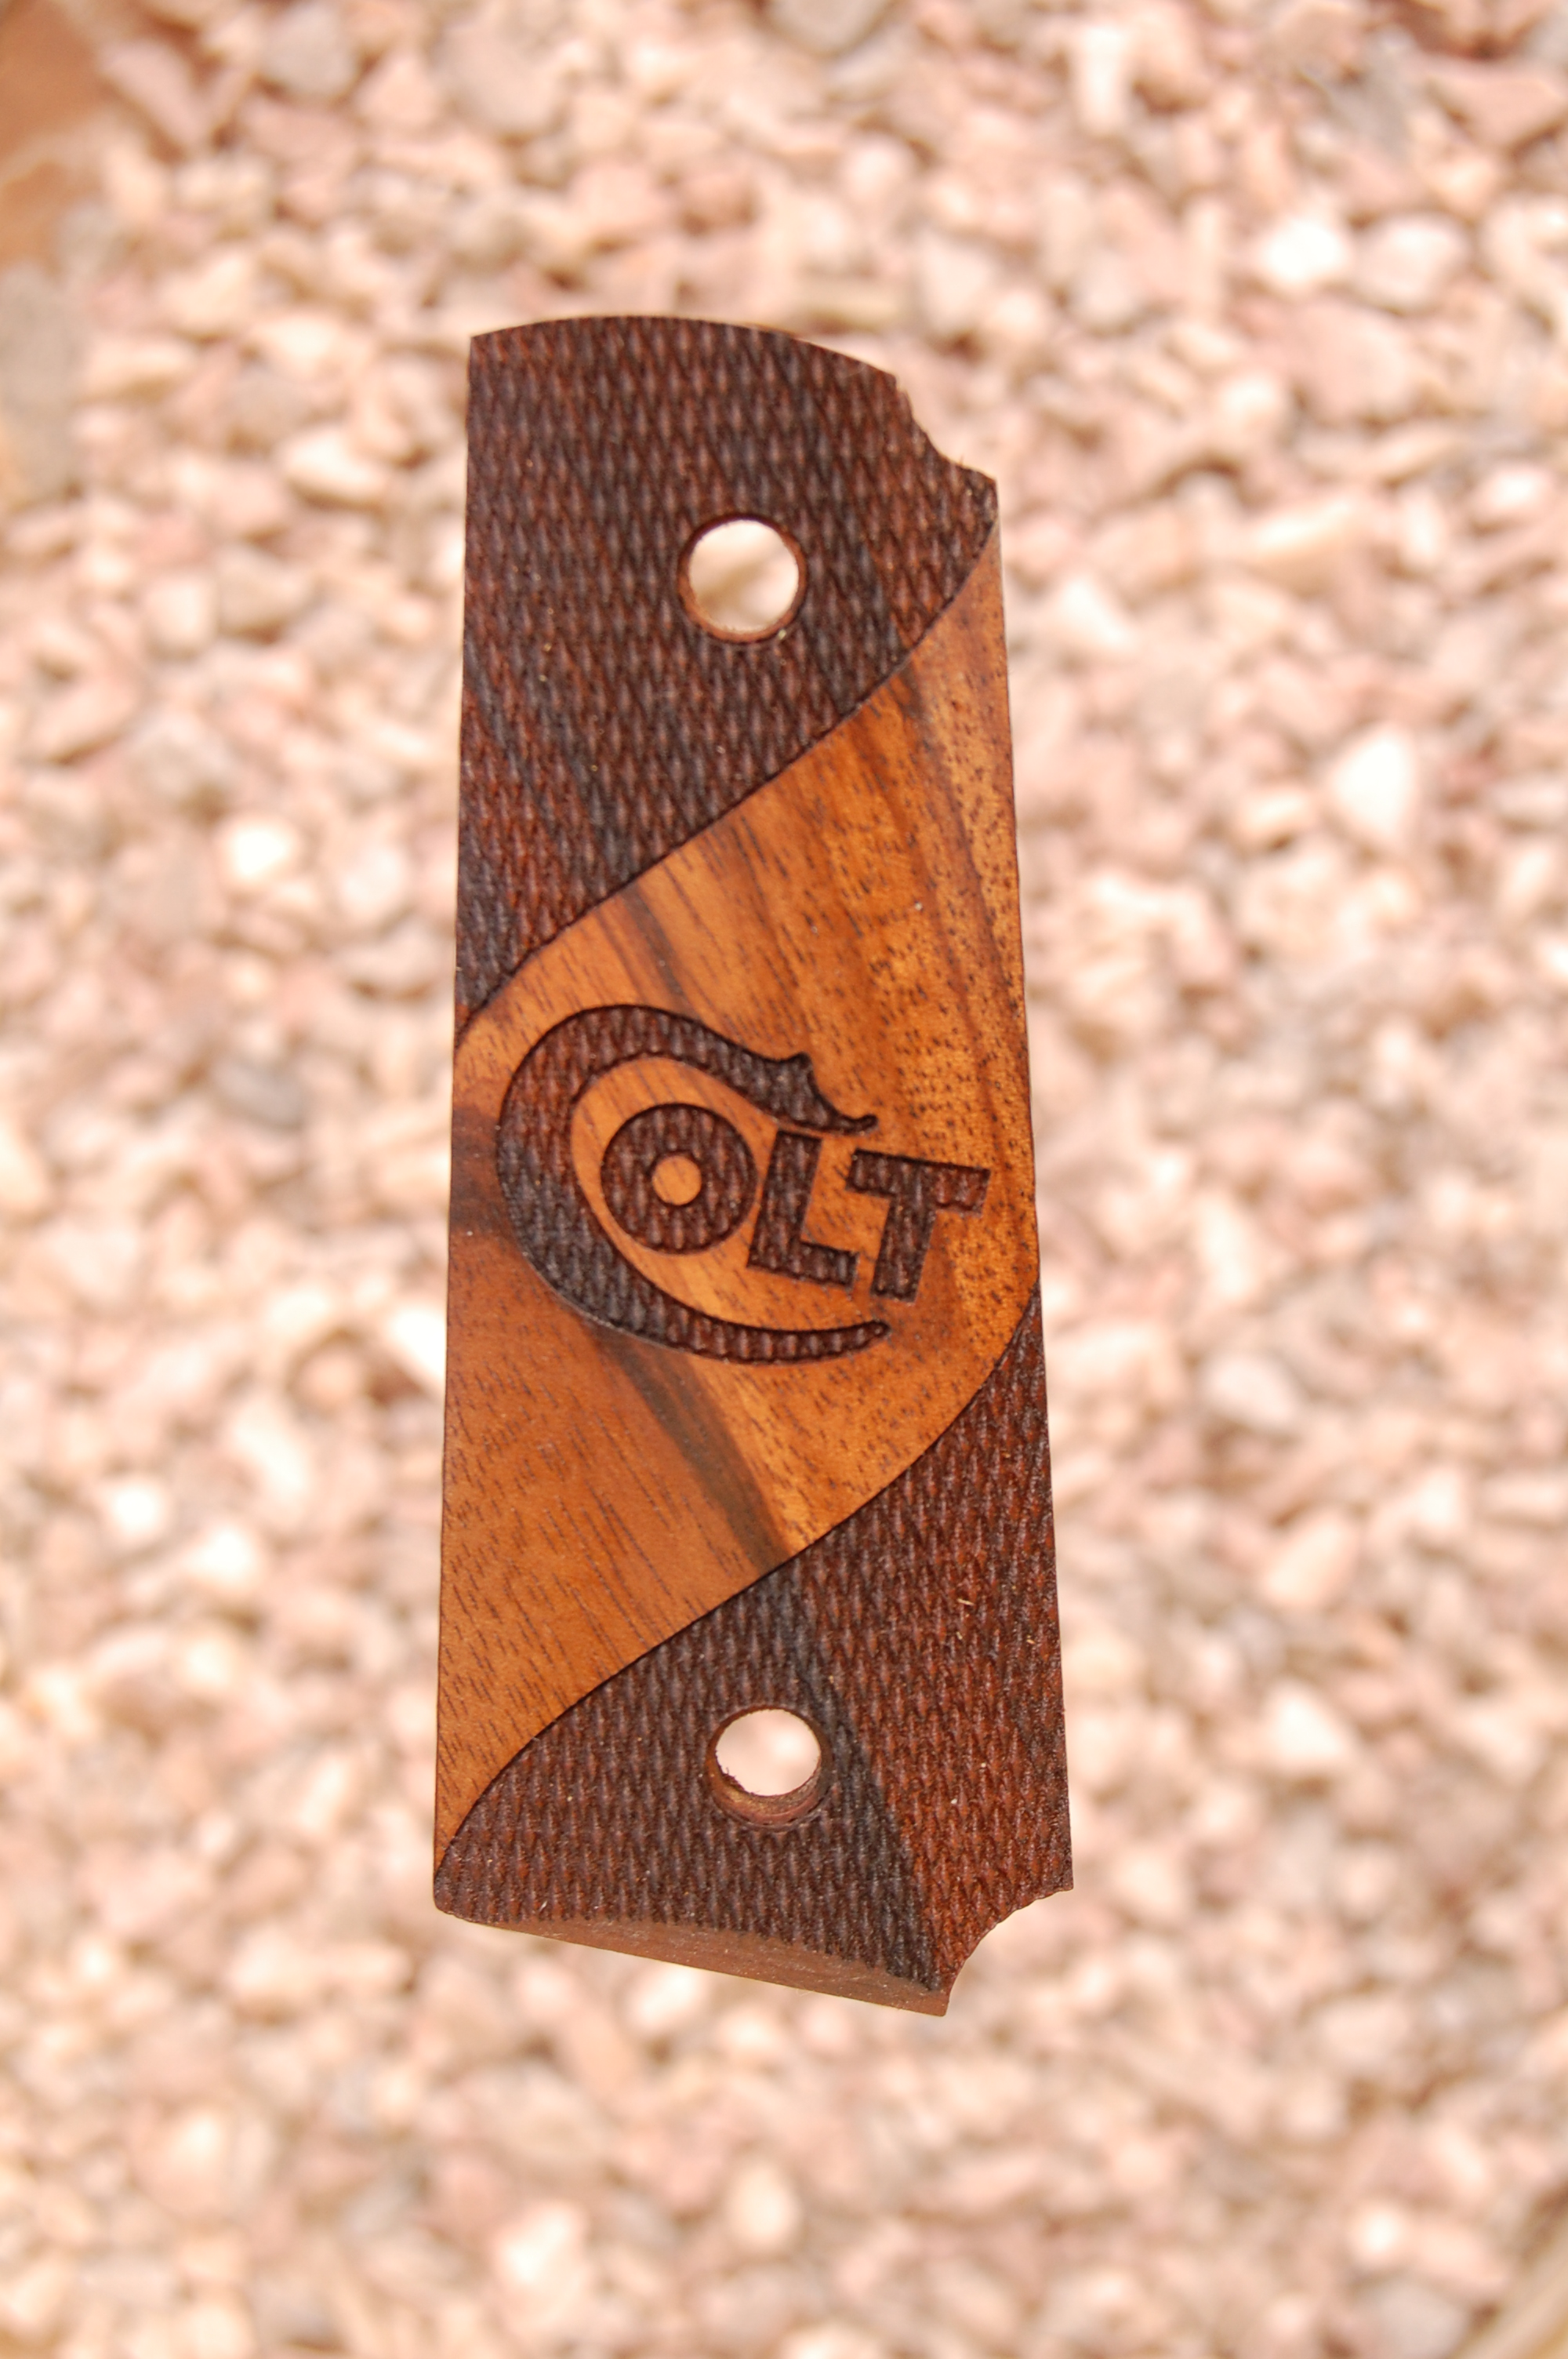 COLT 1911 OFFICER grips (partially checkered+logo) - full size